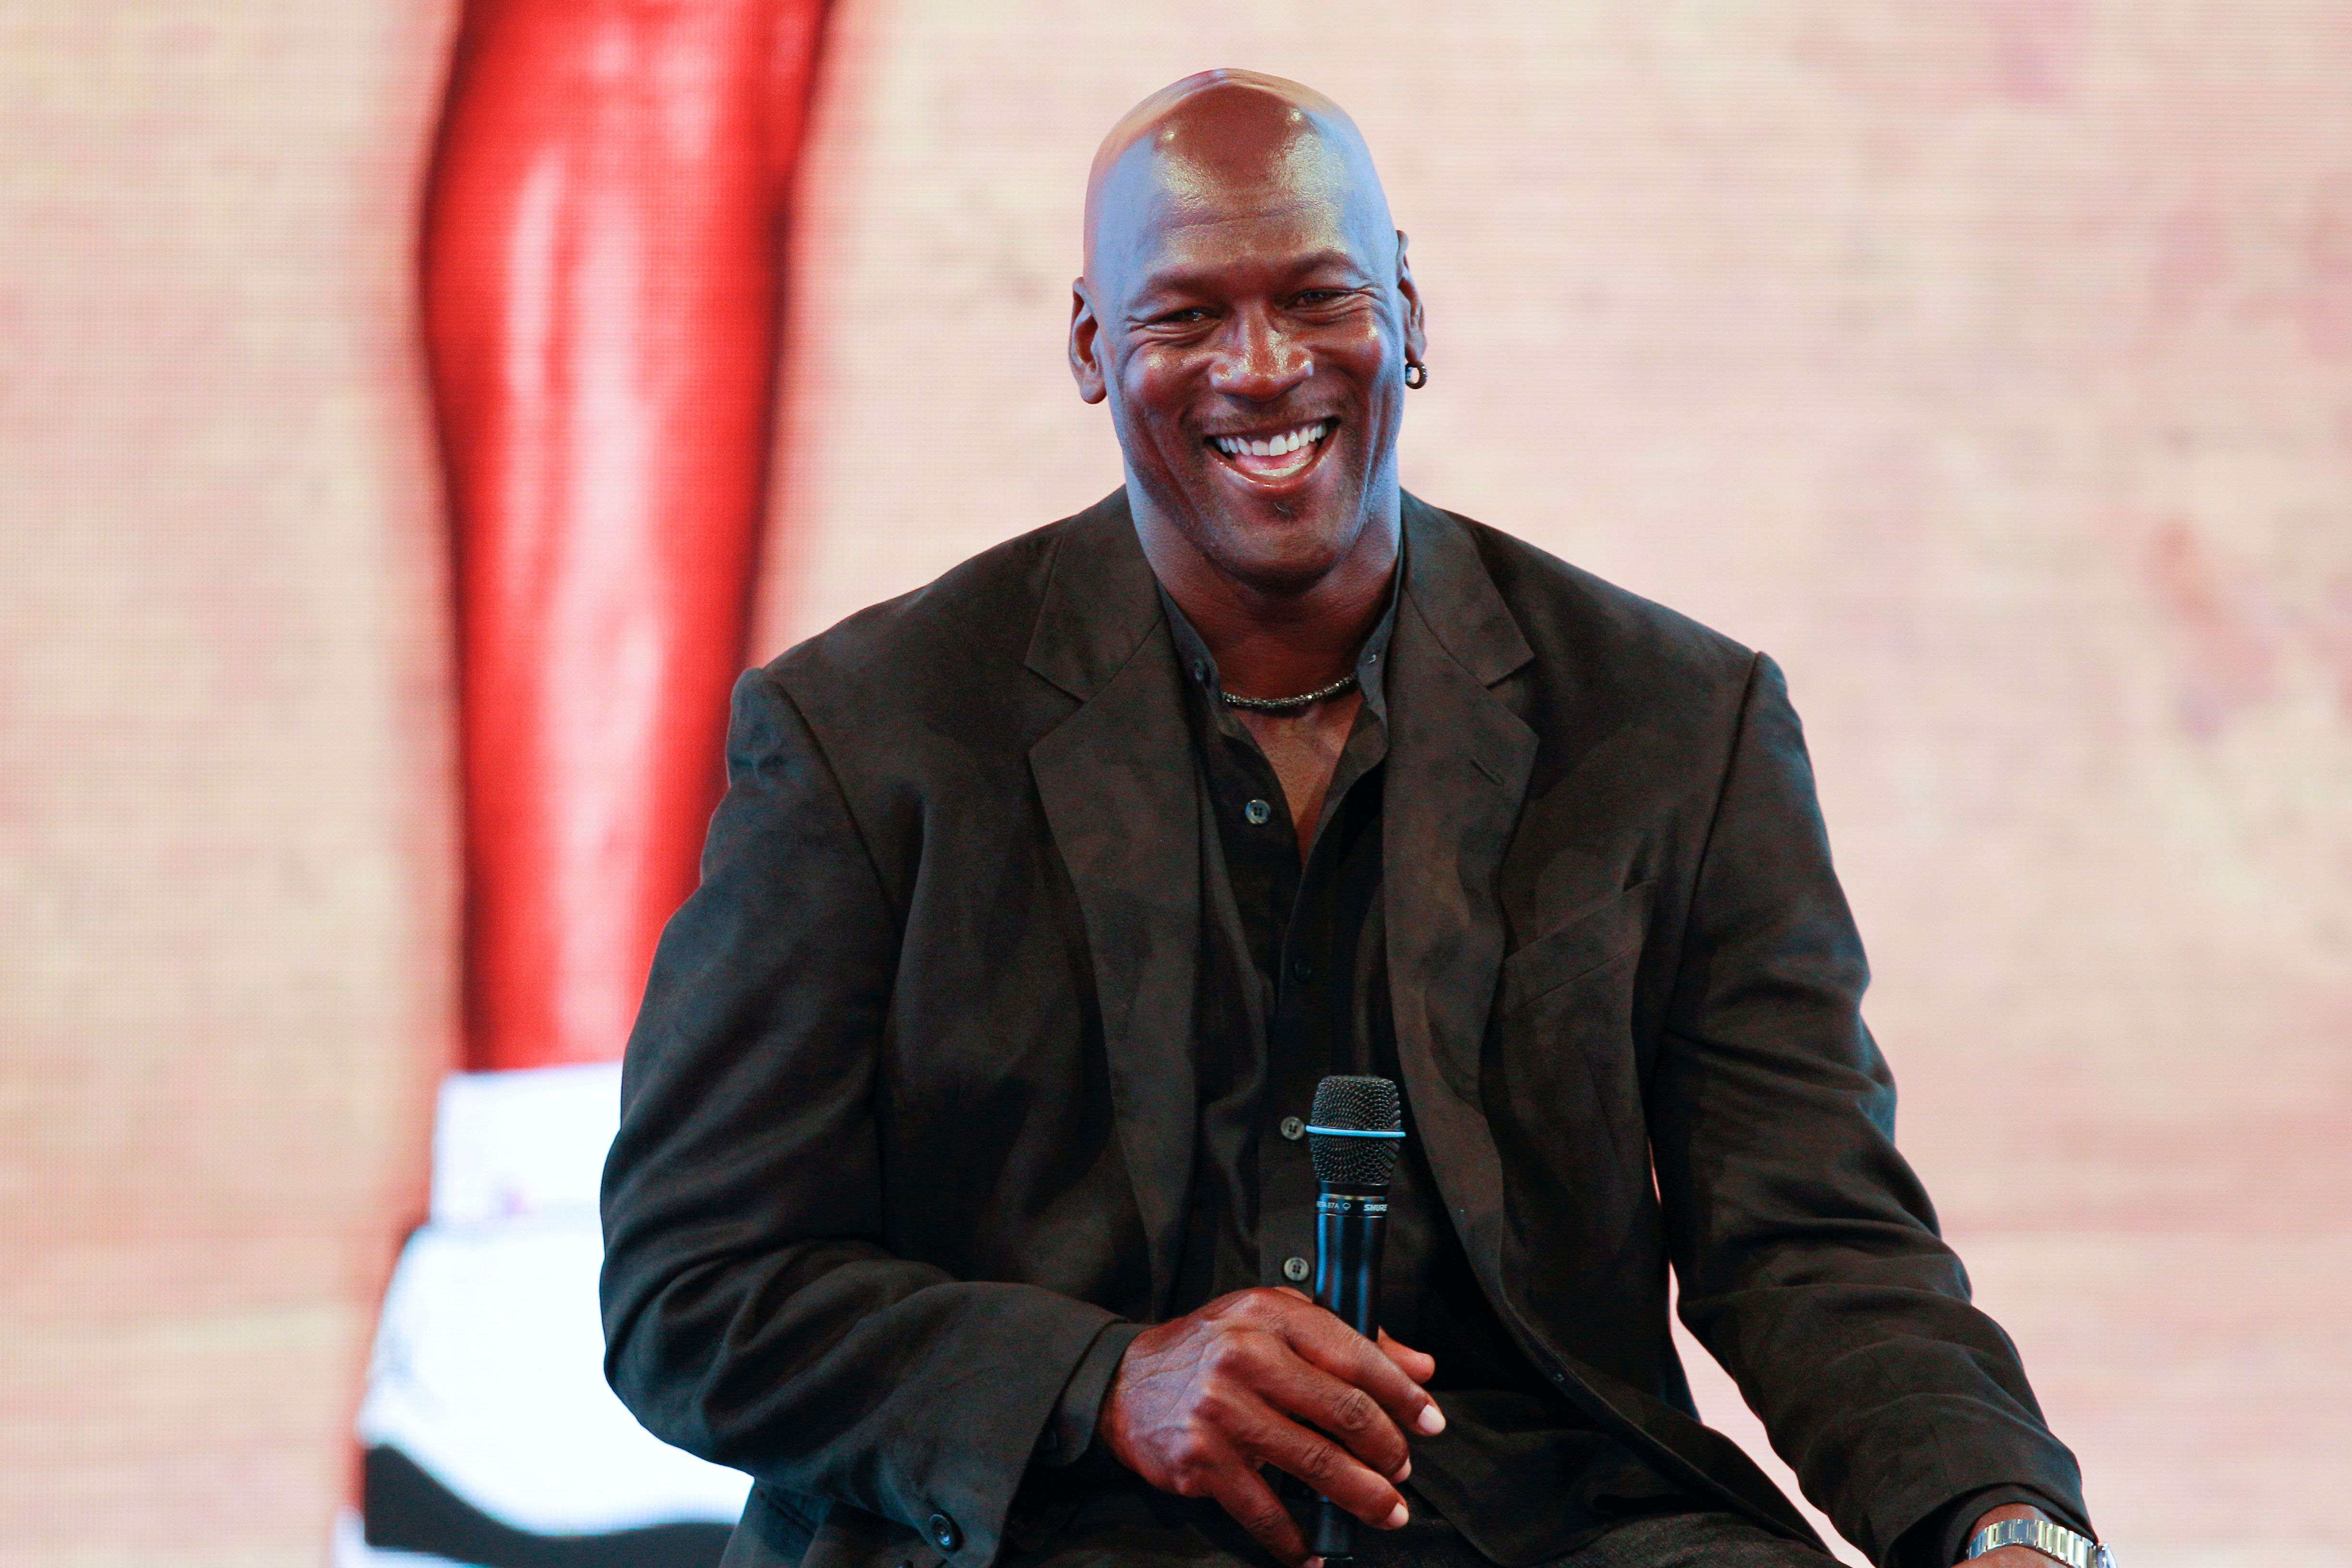 Michael Jordan celebrates the 30th anniversary of the Air Jordan Shoe on June 12, 2015 in Paris, France | Photo: GettyImages